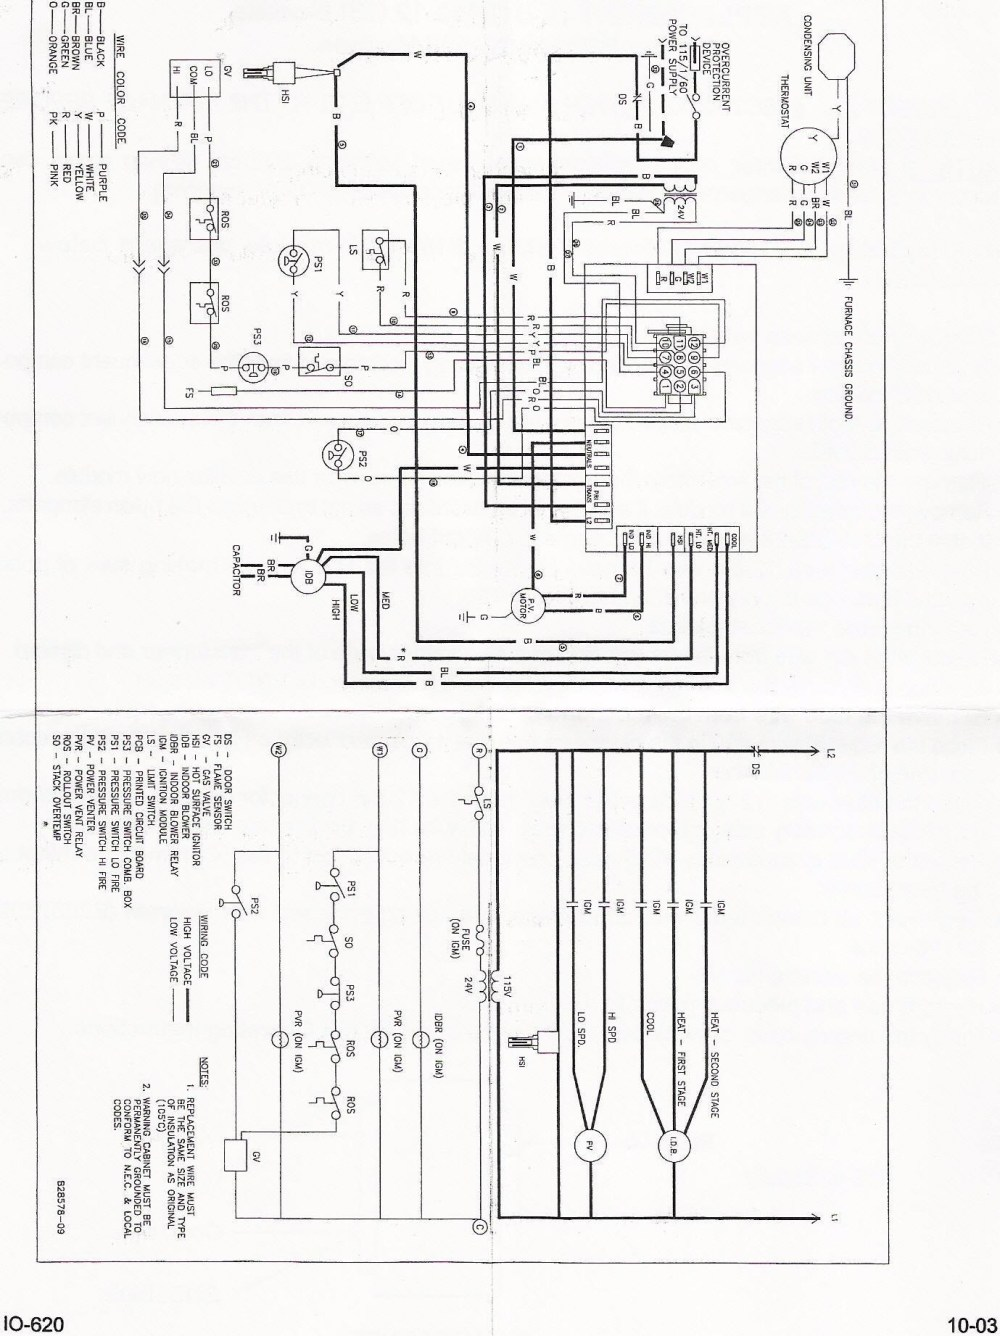 medium resolution of trane xr13 wiring diagram collection